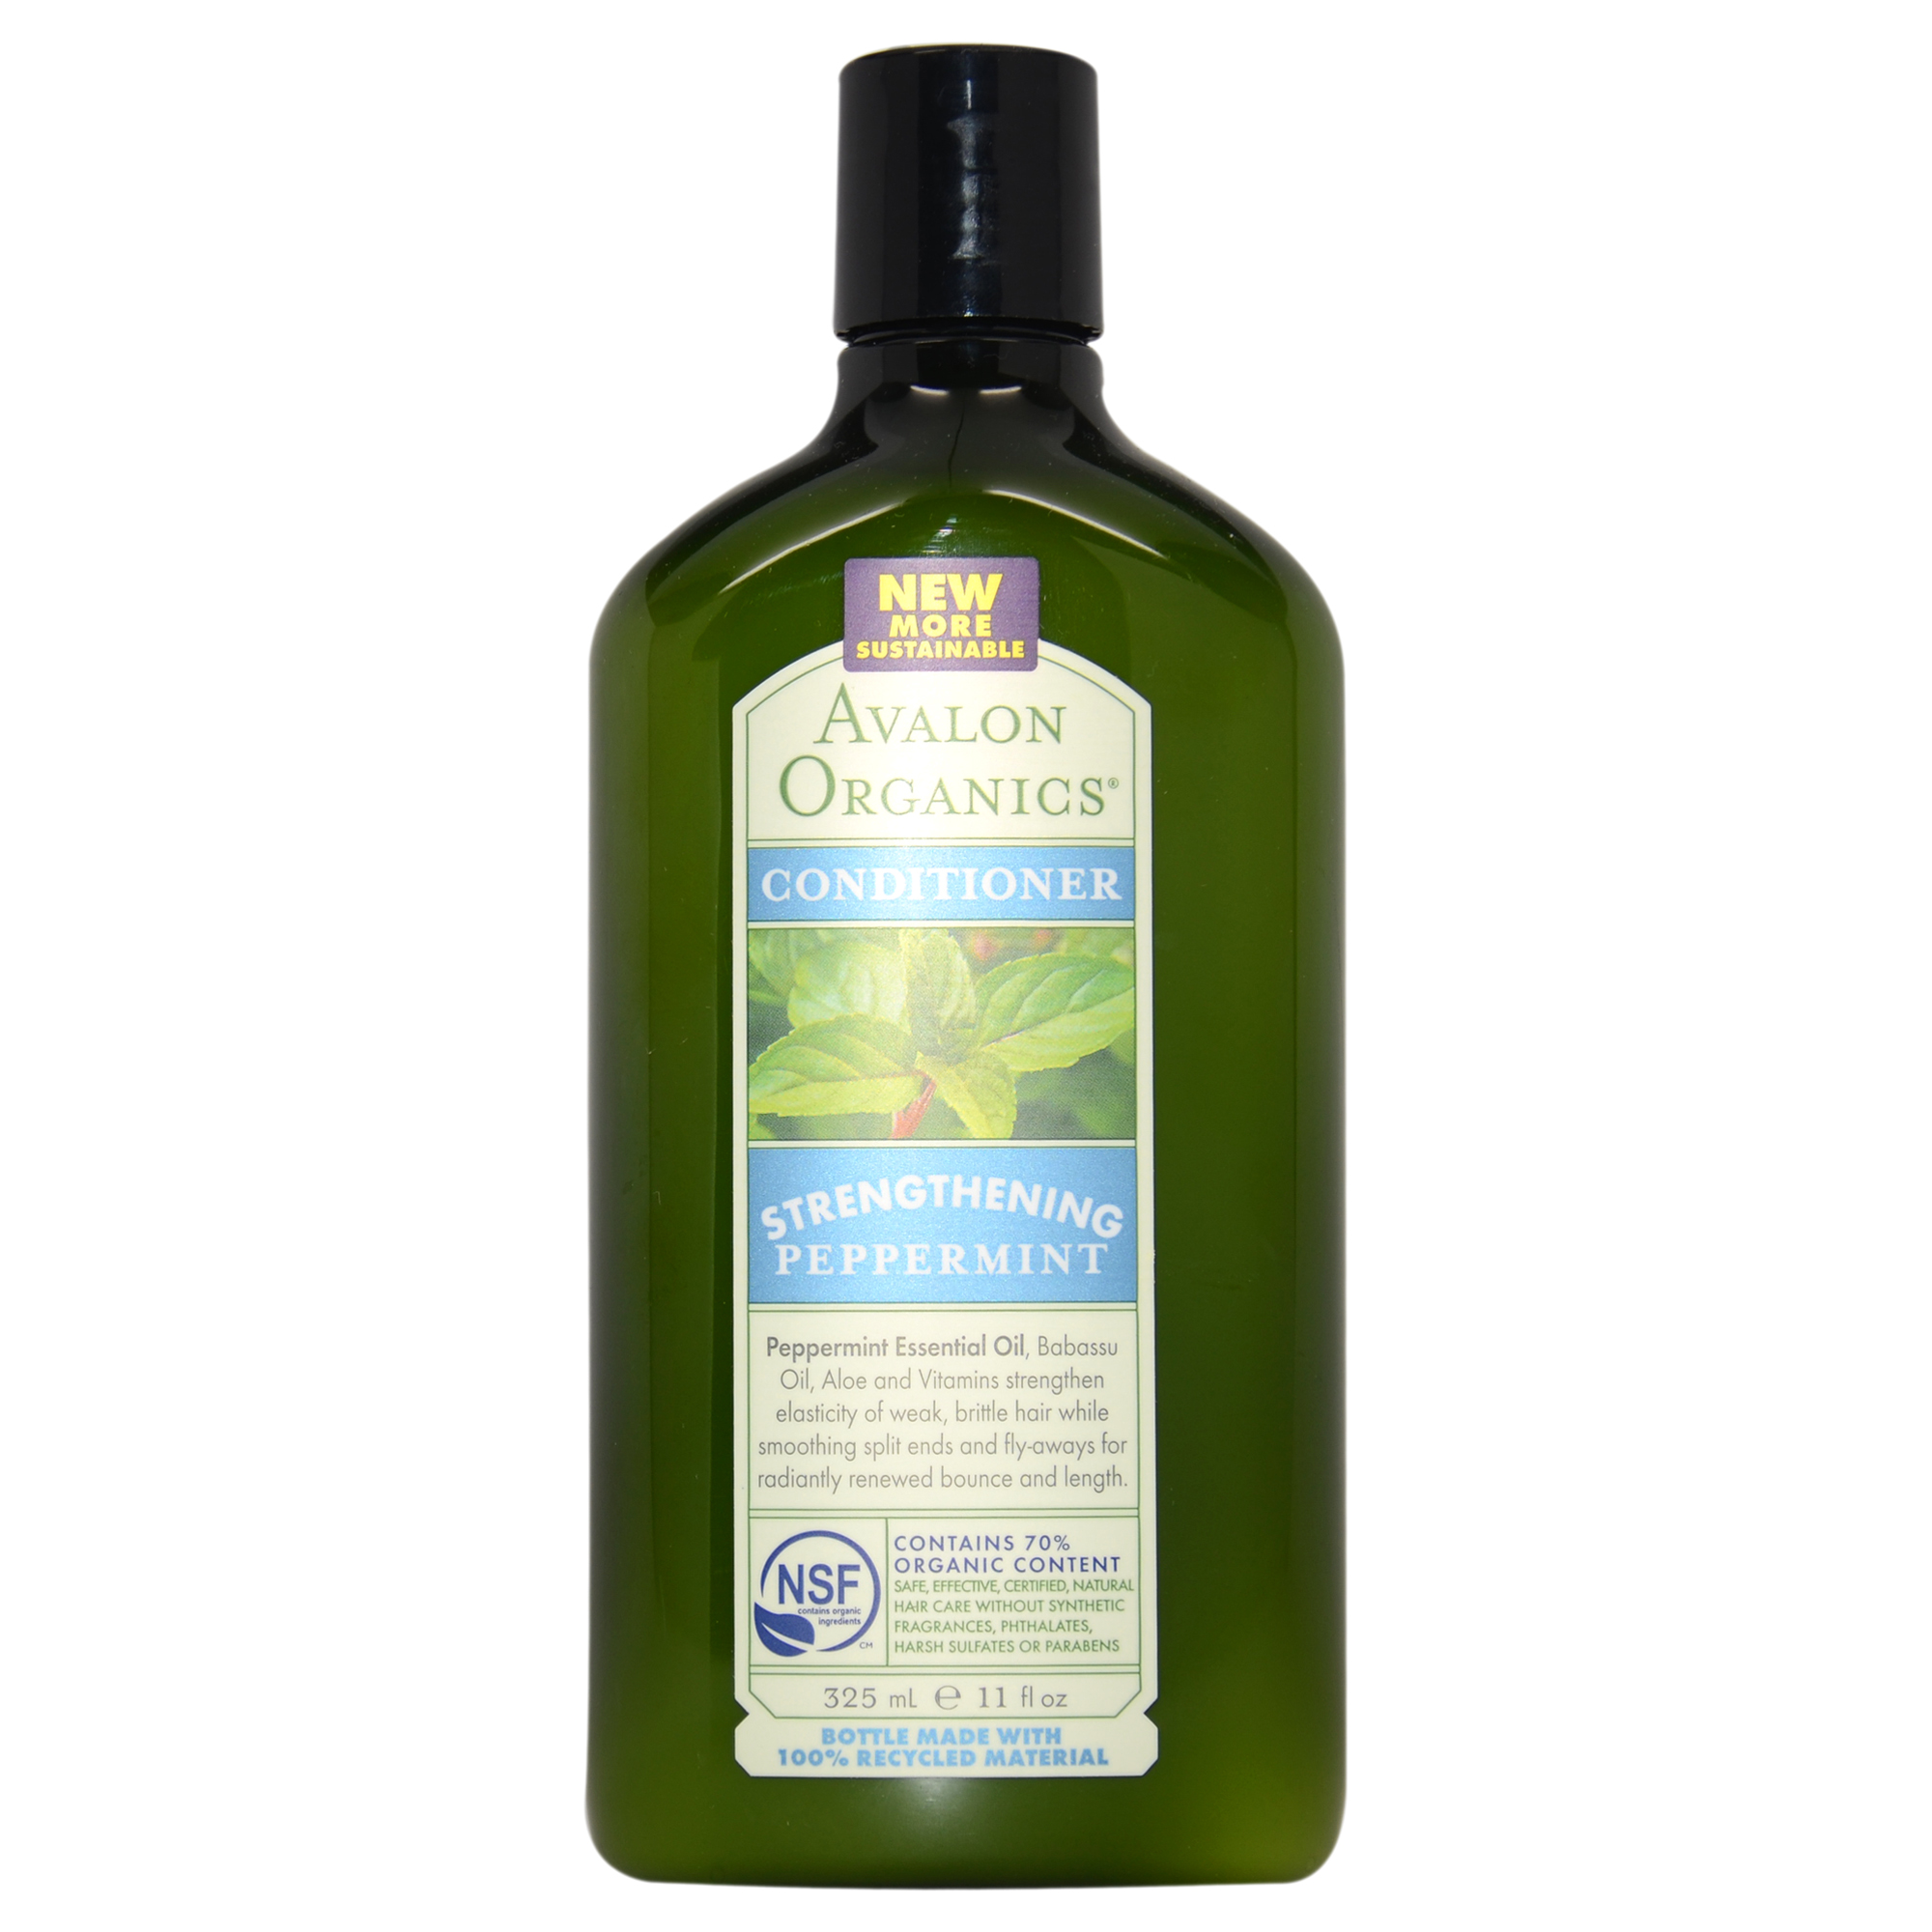 Avalon Organics Strengthening Peppermint Conditioner, 11 Oz